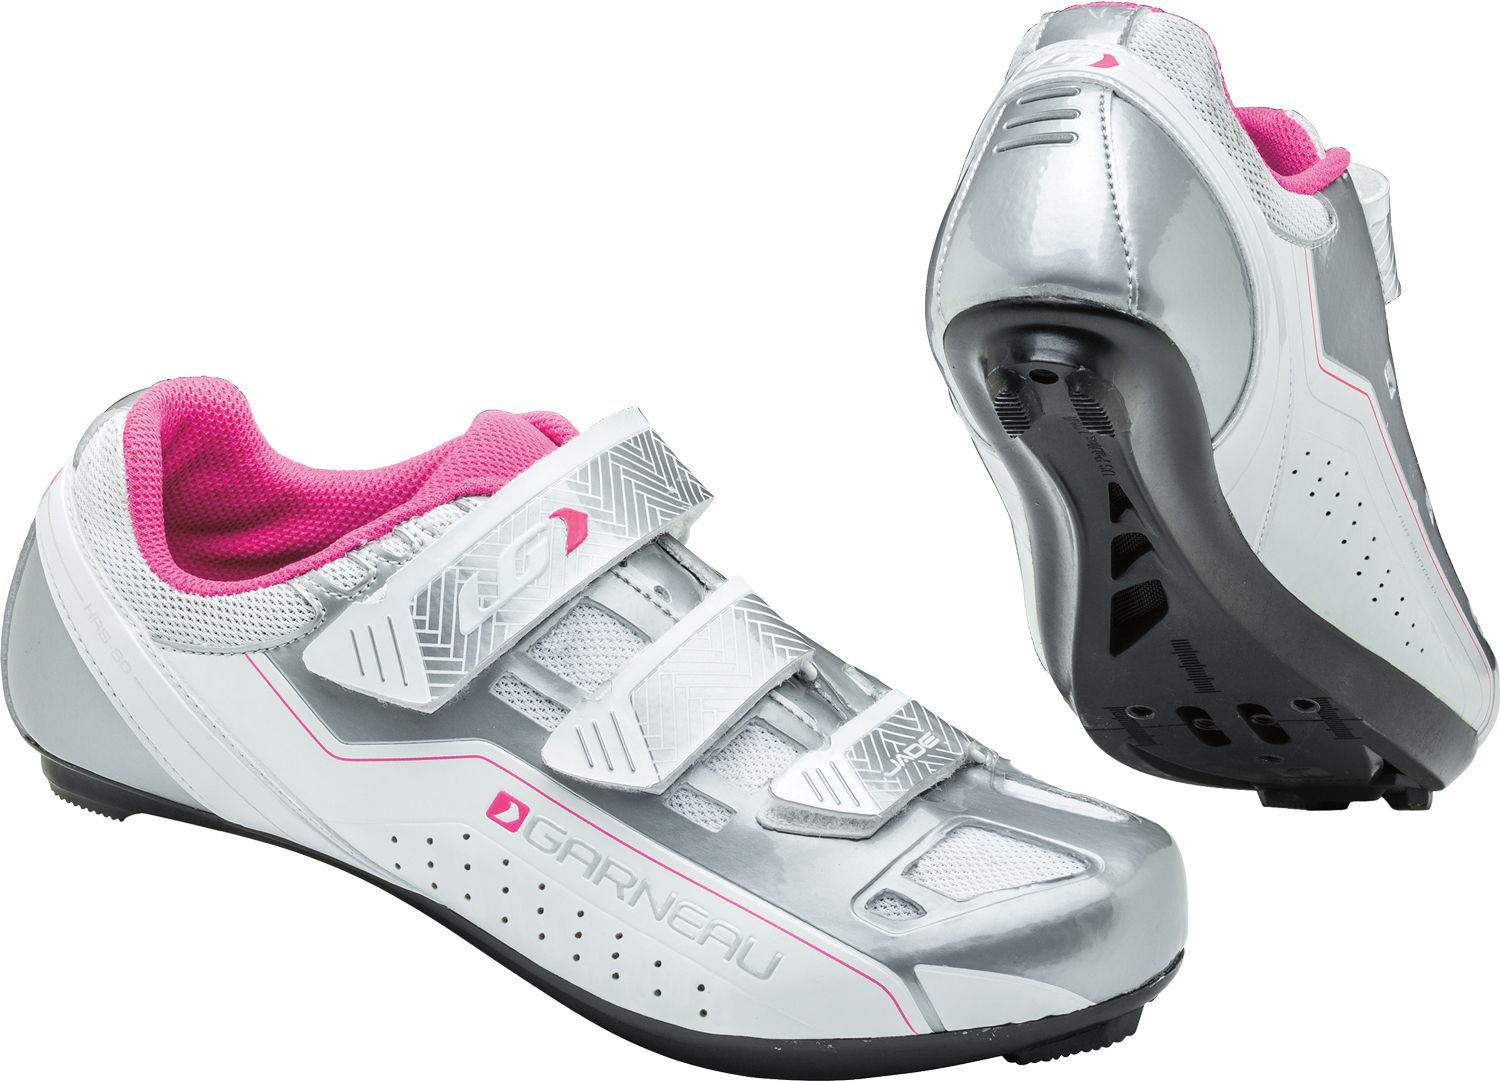 Indoor Cycling Shoes Dick S Sporting Goods